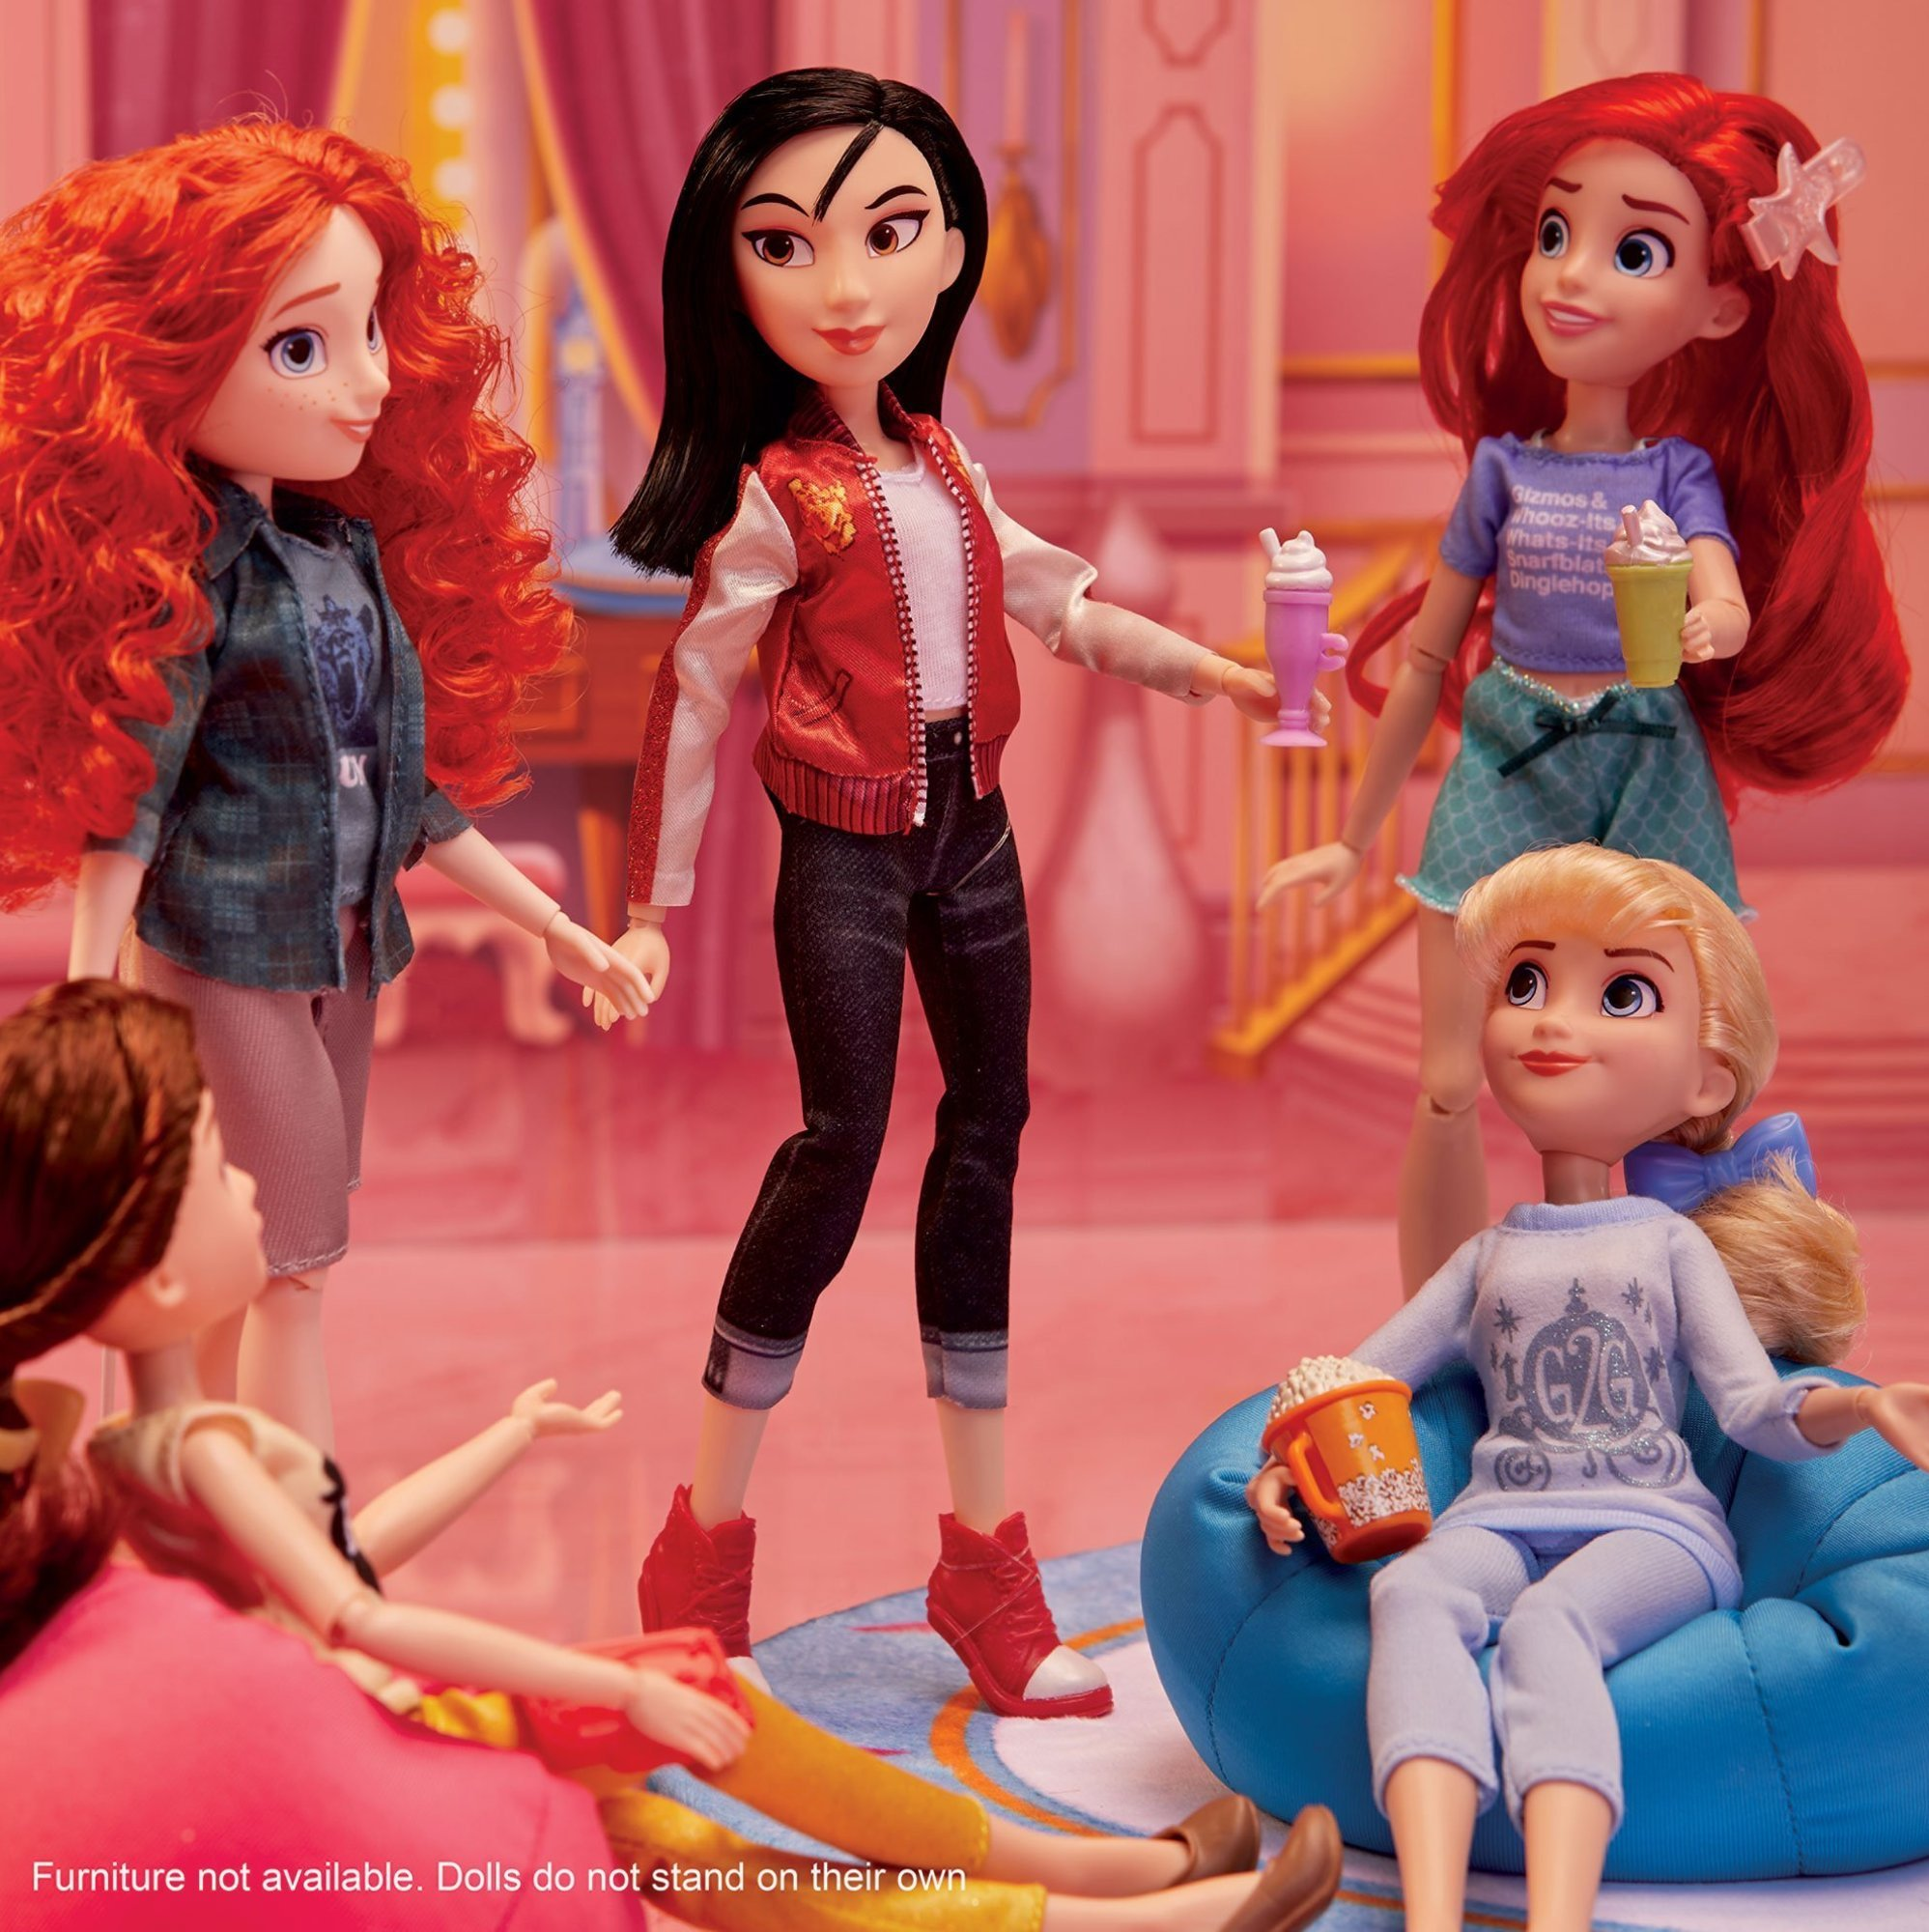 Ralph Breaks The Internet Ultimate Fashion Doll Pack Coming Soon Diskingdom Com Disney Marvel Star Wars Merchandise News